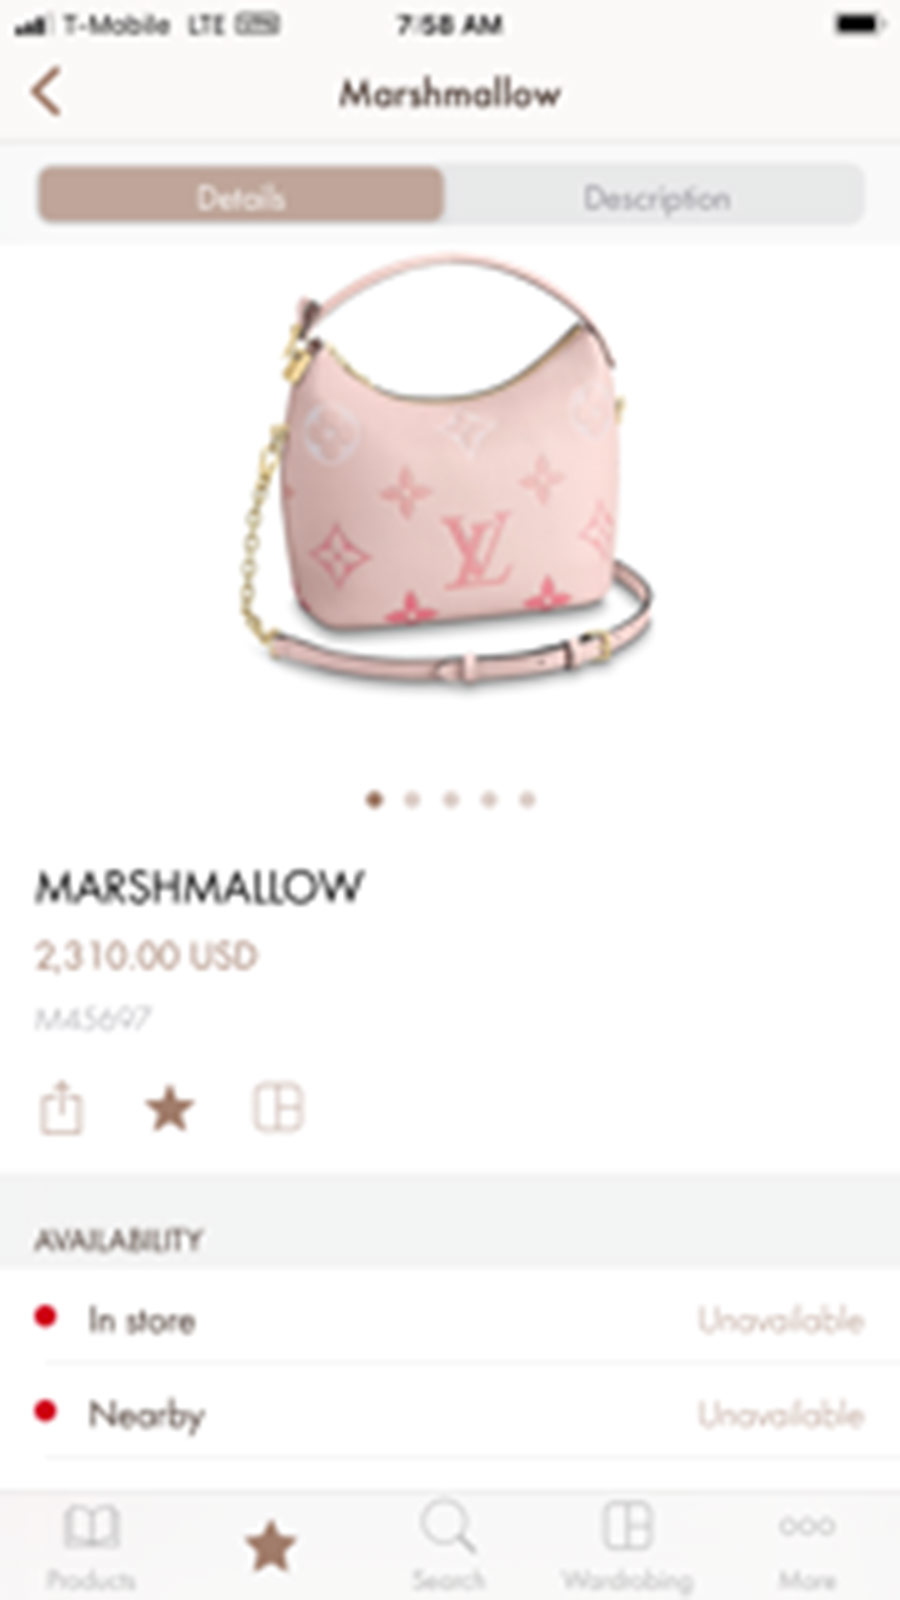 Louis Vuitton By The Pool Marshmallow Hawaii Price